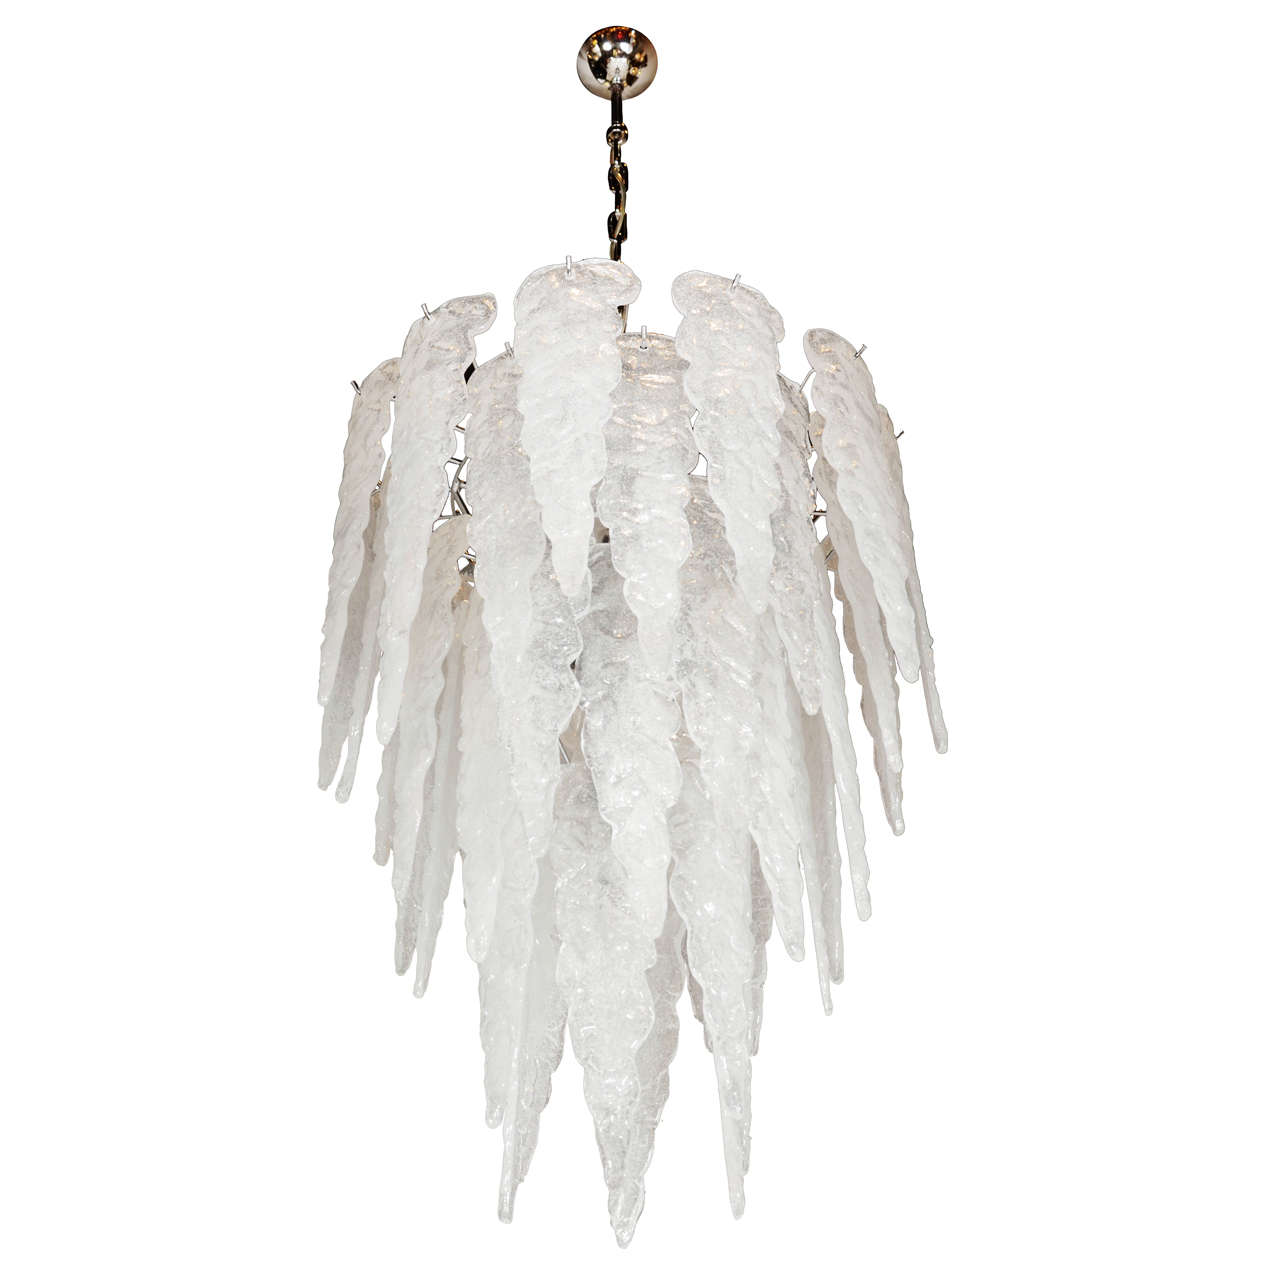 Sculptural hand blown murano glass icicle chandelier by salviati at sculptural hand blown murano glass icicle chandelier by salviati for sale aloadofball Image collections